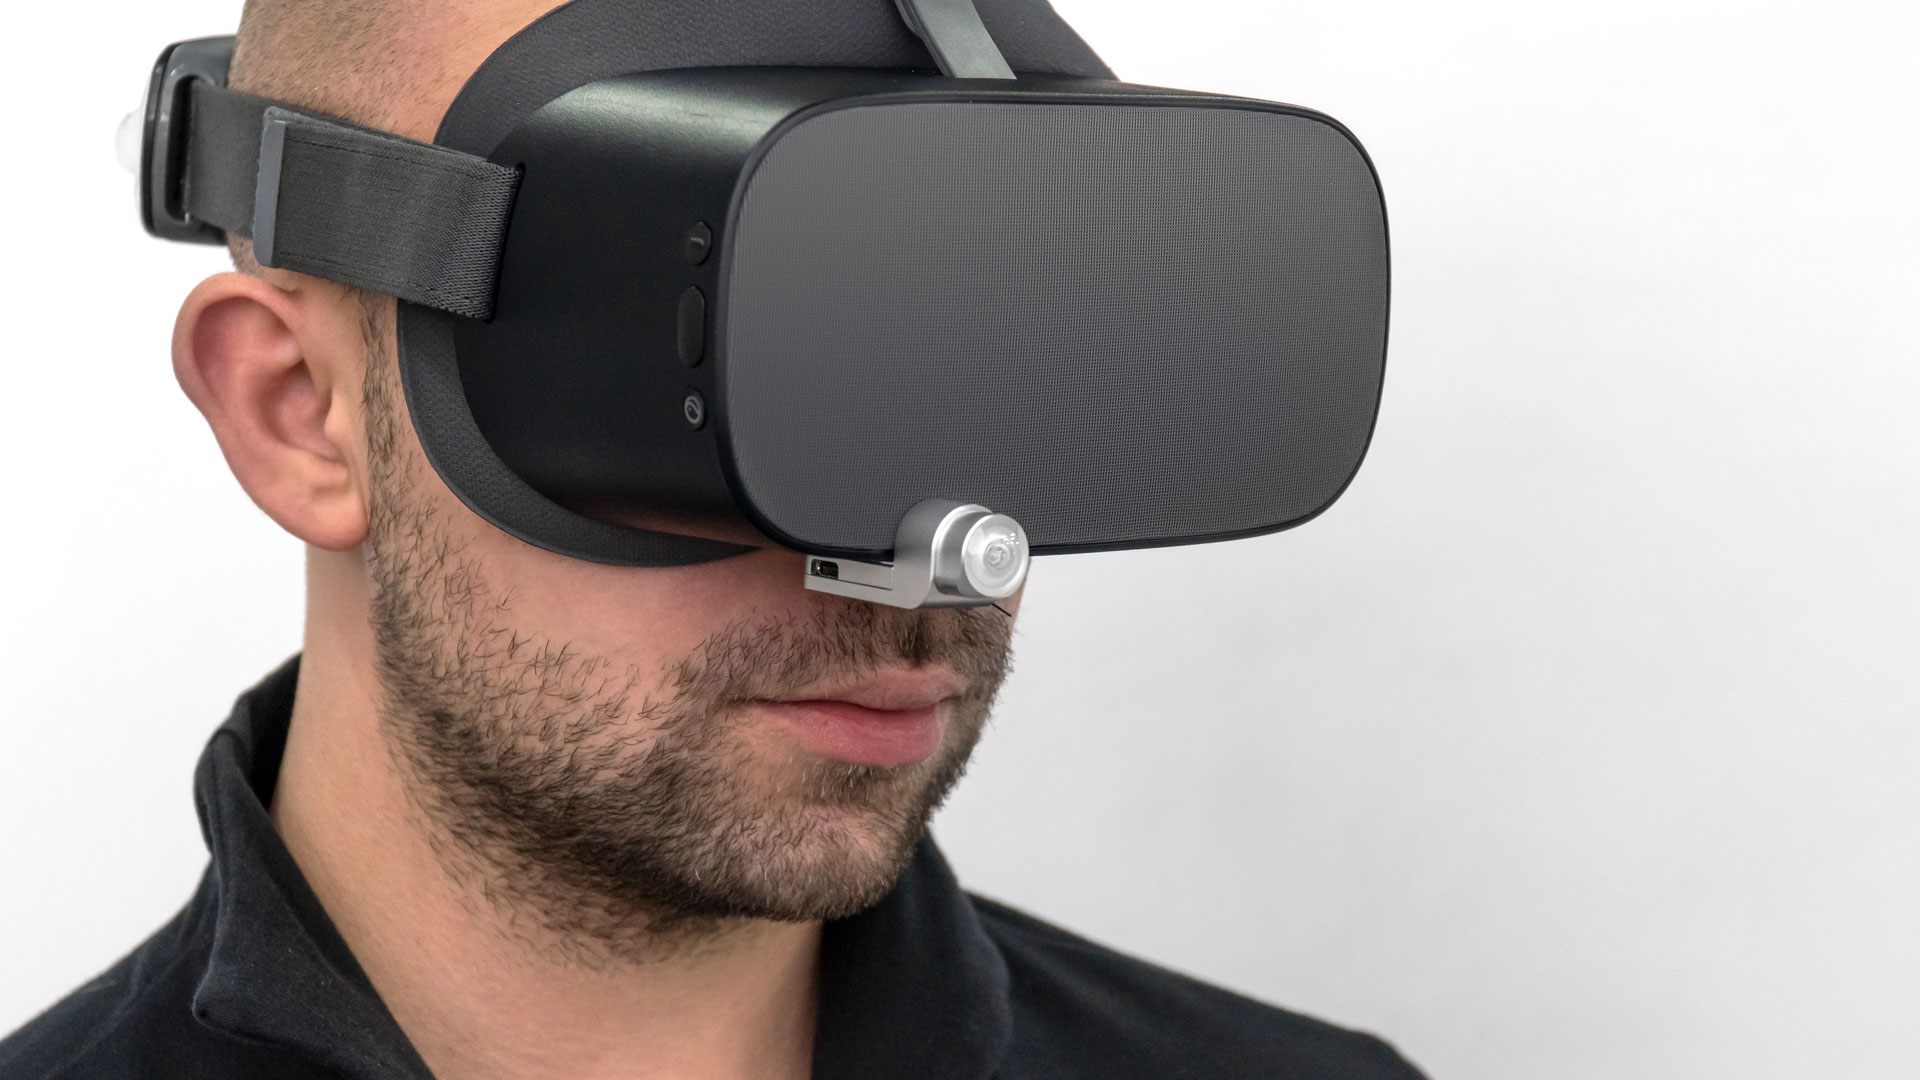 virtual reality headset with Alt- Antilatency tracker connected by usb-c type antilatency radio-socket